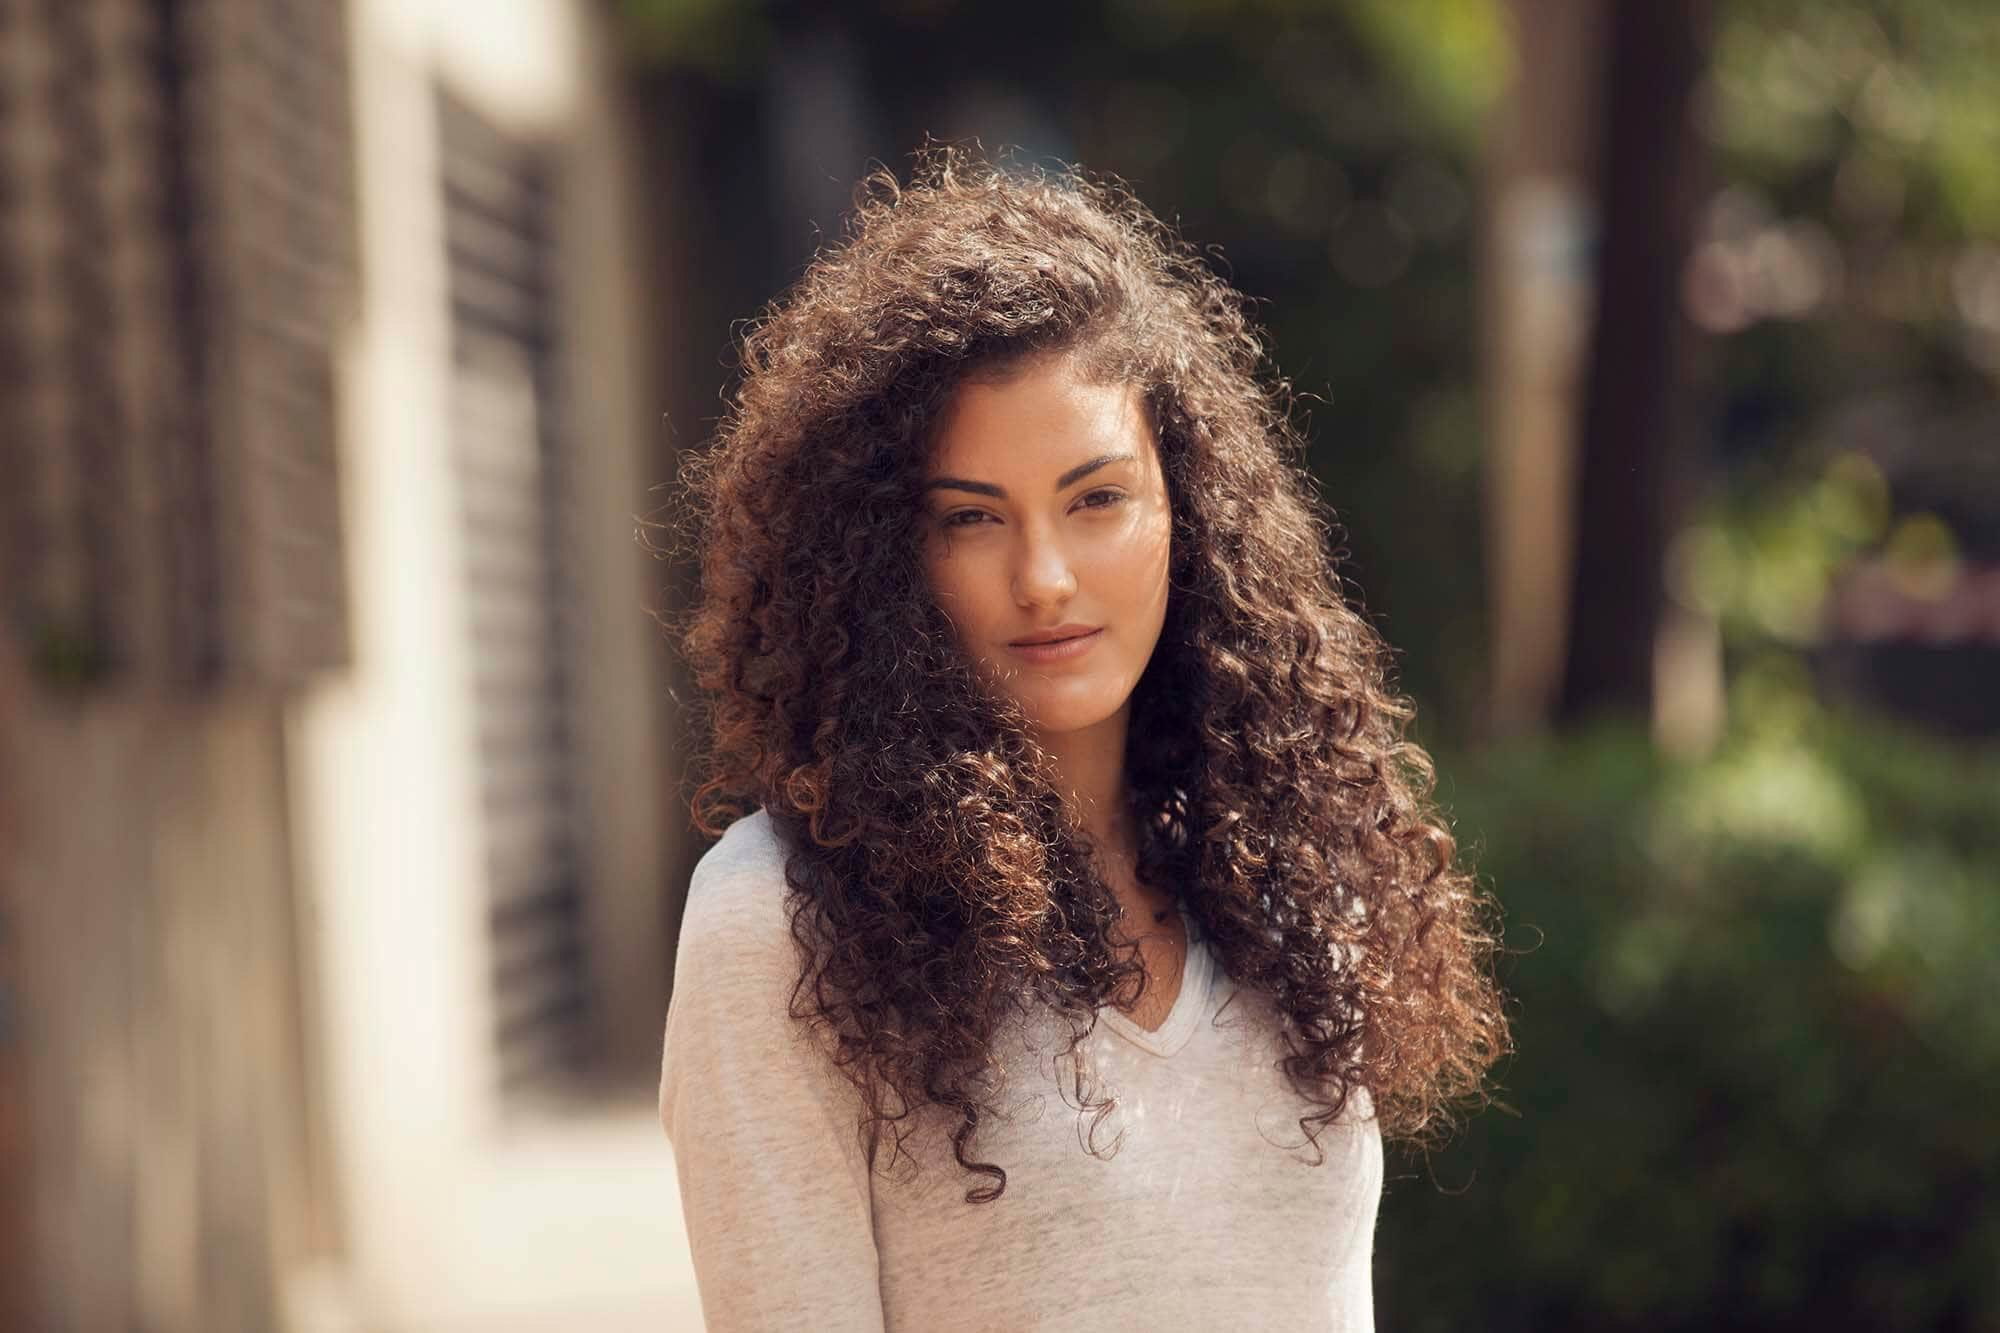 Best ideas about Hairstyles For Thick Curly Hair . Save or Pin 16 Easy and Modern Hairstyles for Thick Curly Hair Now.